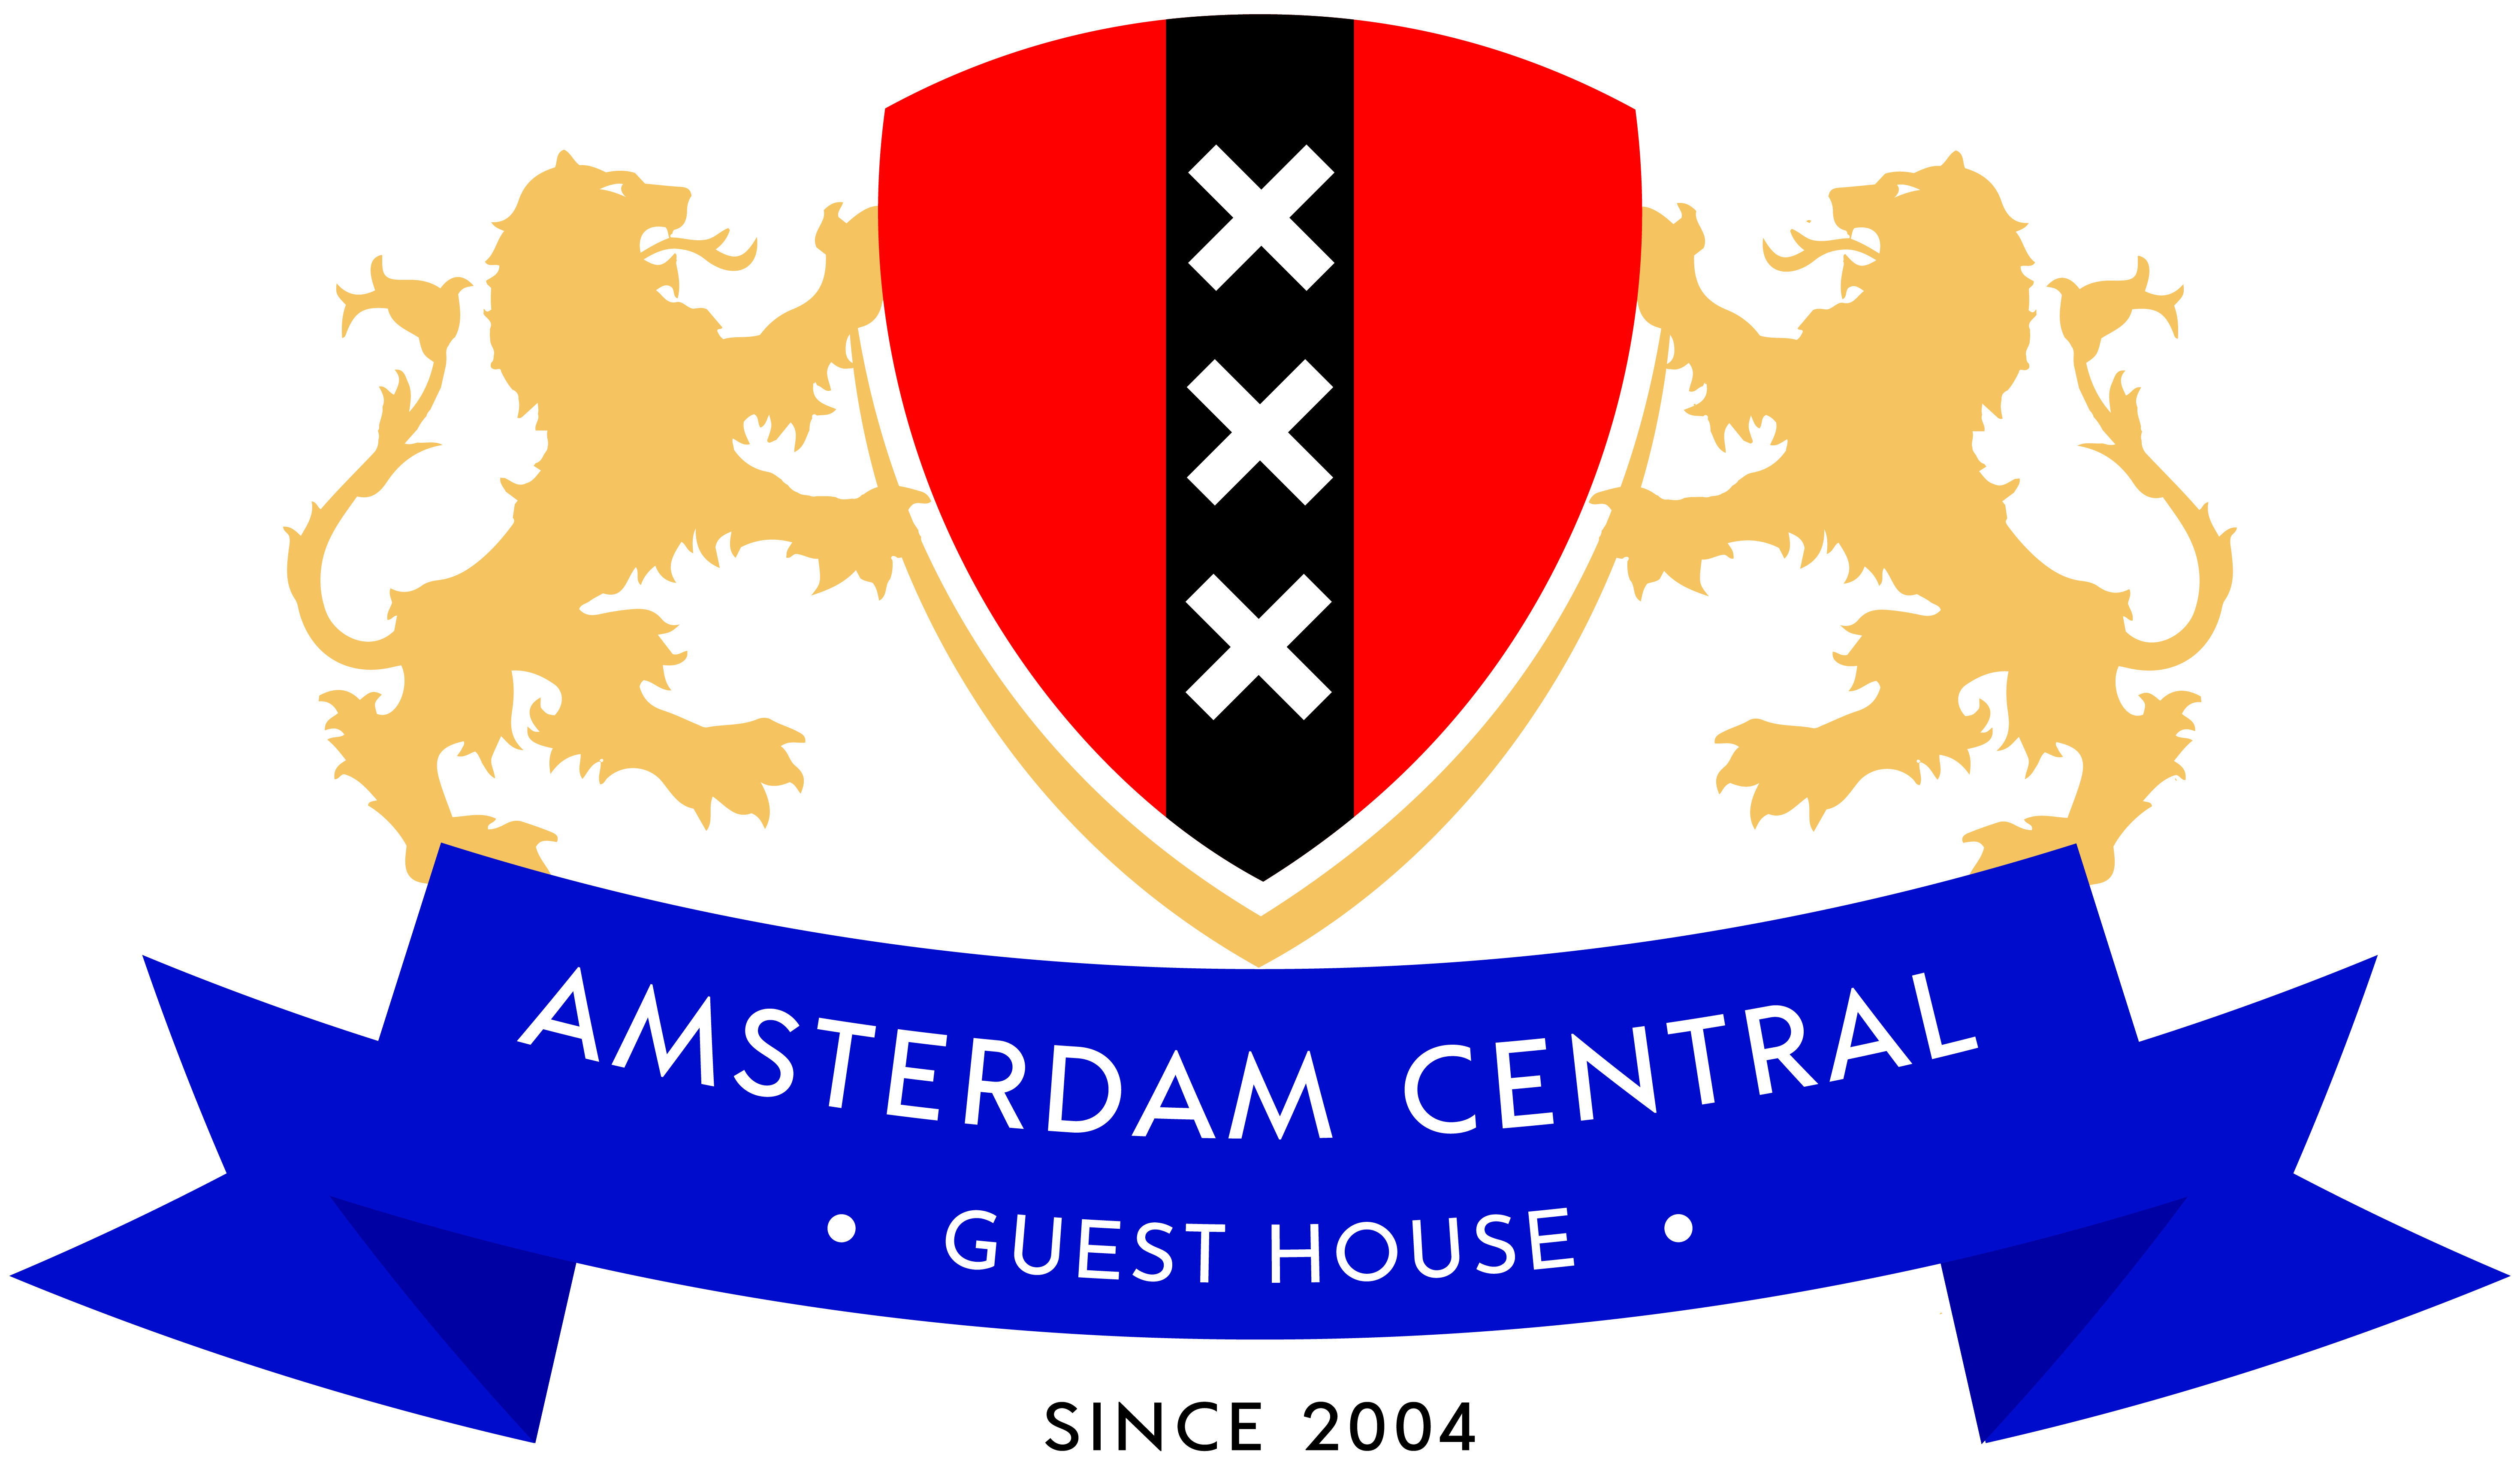 Amsterdam Central Guest House